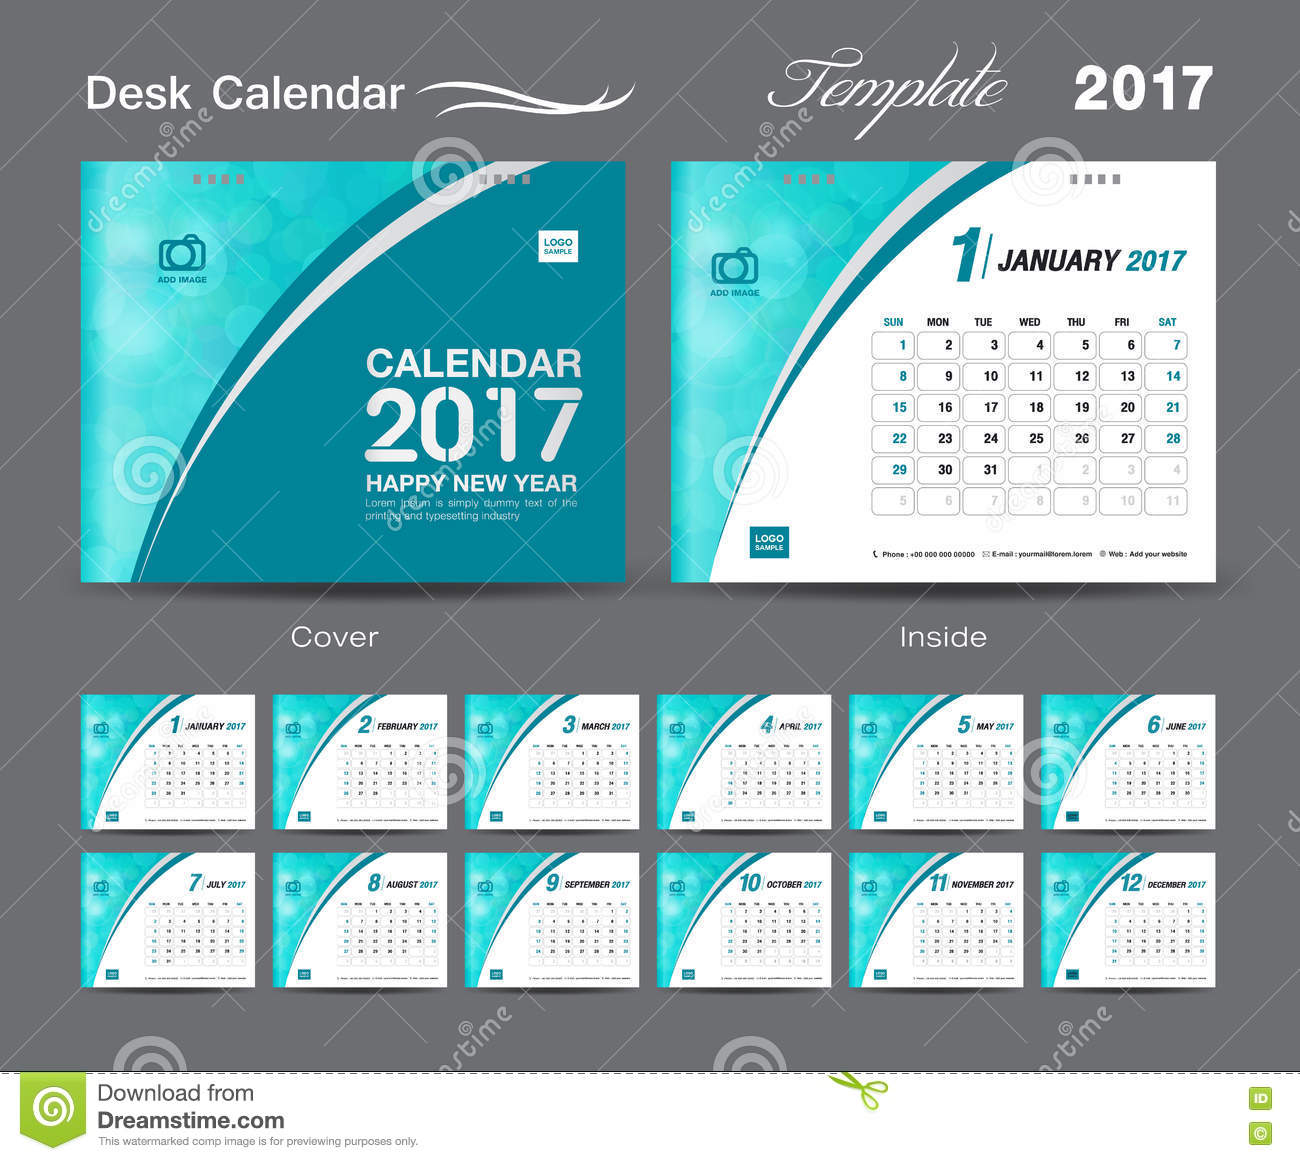 Calendar Design Pictures : Desk calendar template design set cover